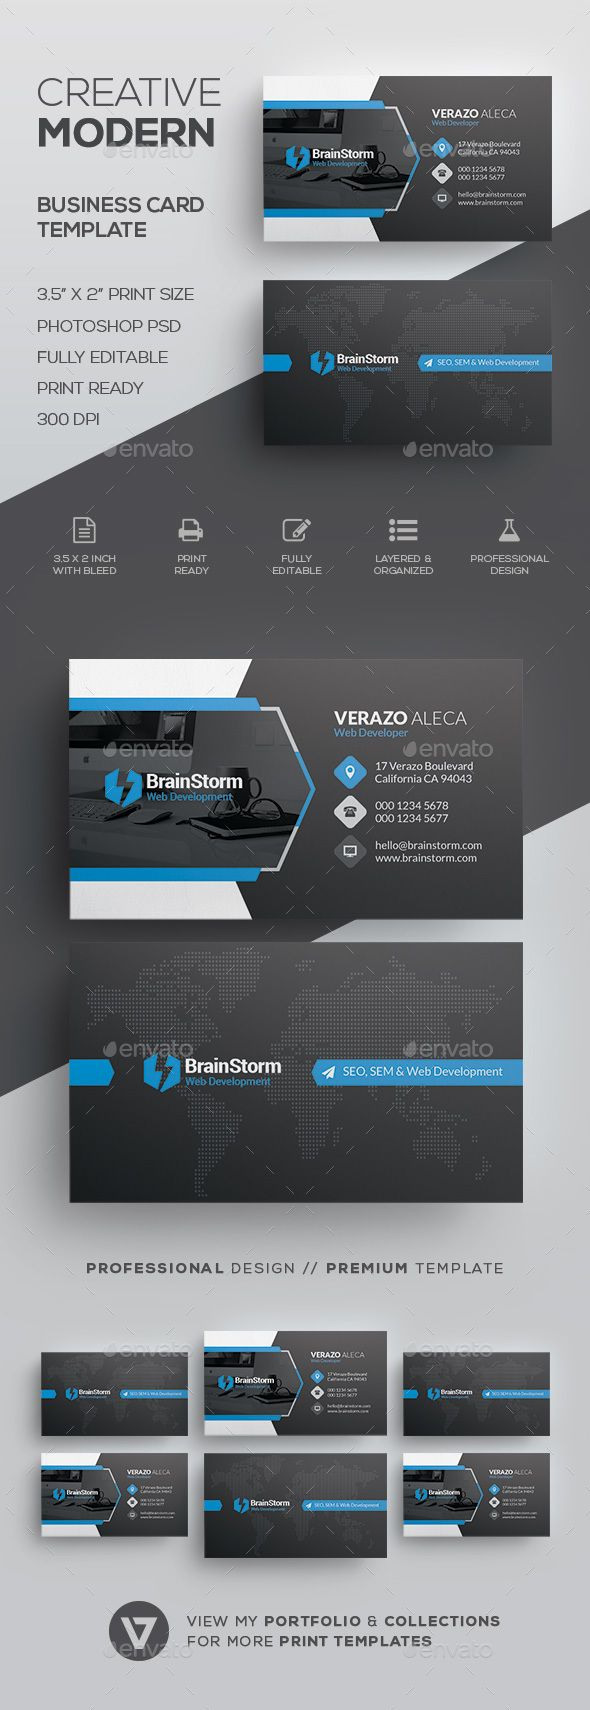 Modern Creative Business Card Template by verazo Need more high quality business card? View my Business Card Templates Collection OR Save Money! Buy Business Card Bundle for only